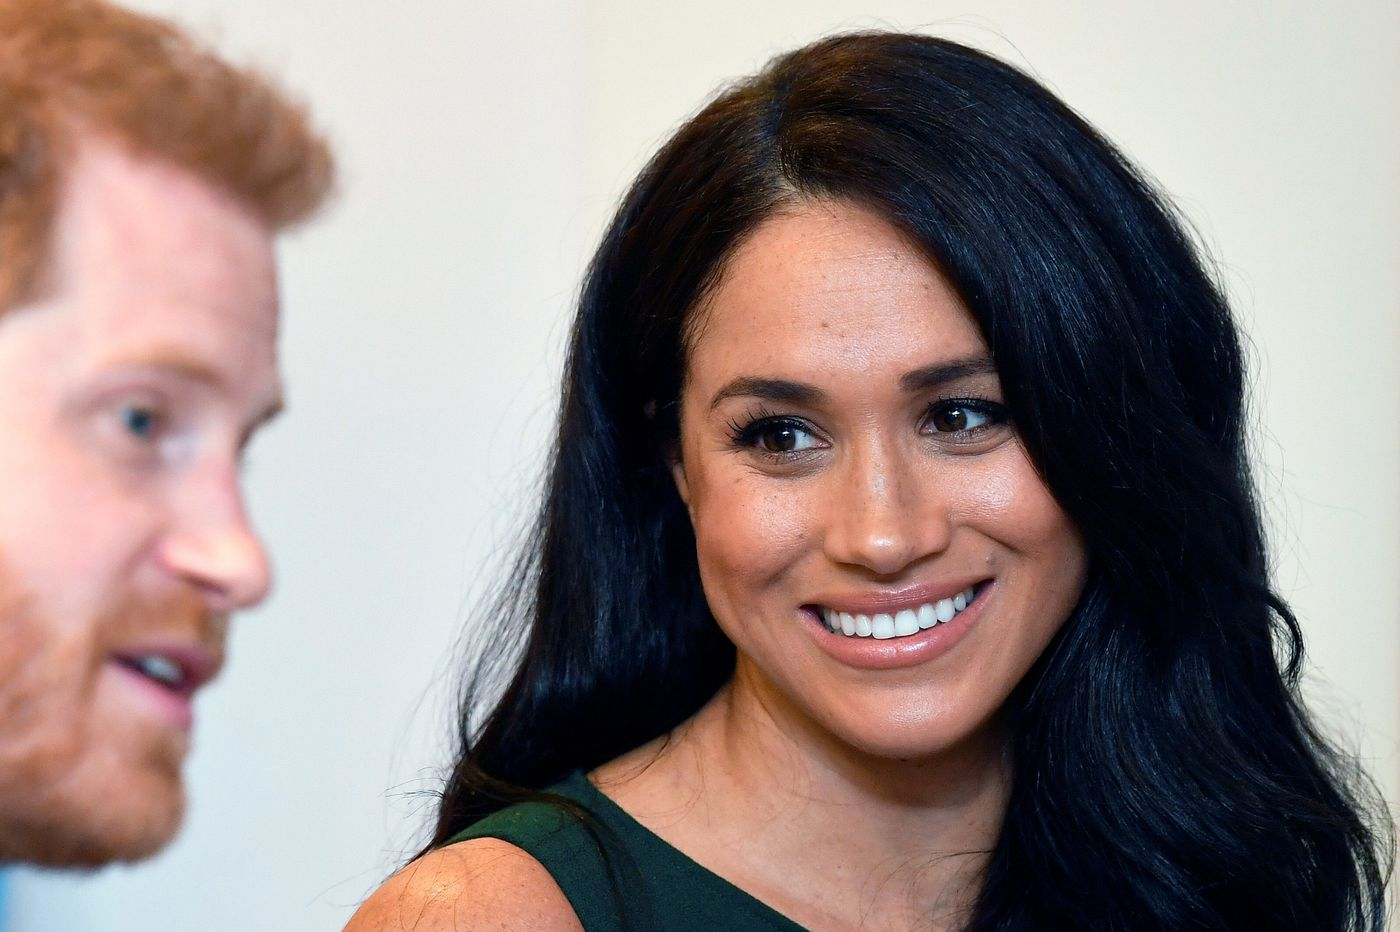 Meghan Markle was asked how she's doing — and she's not OK